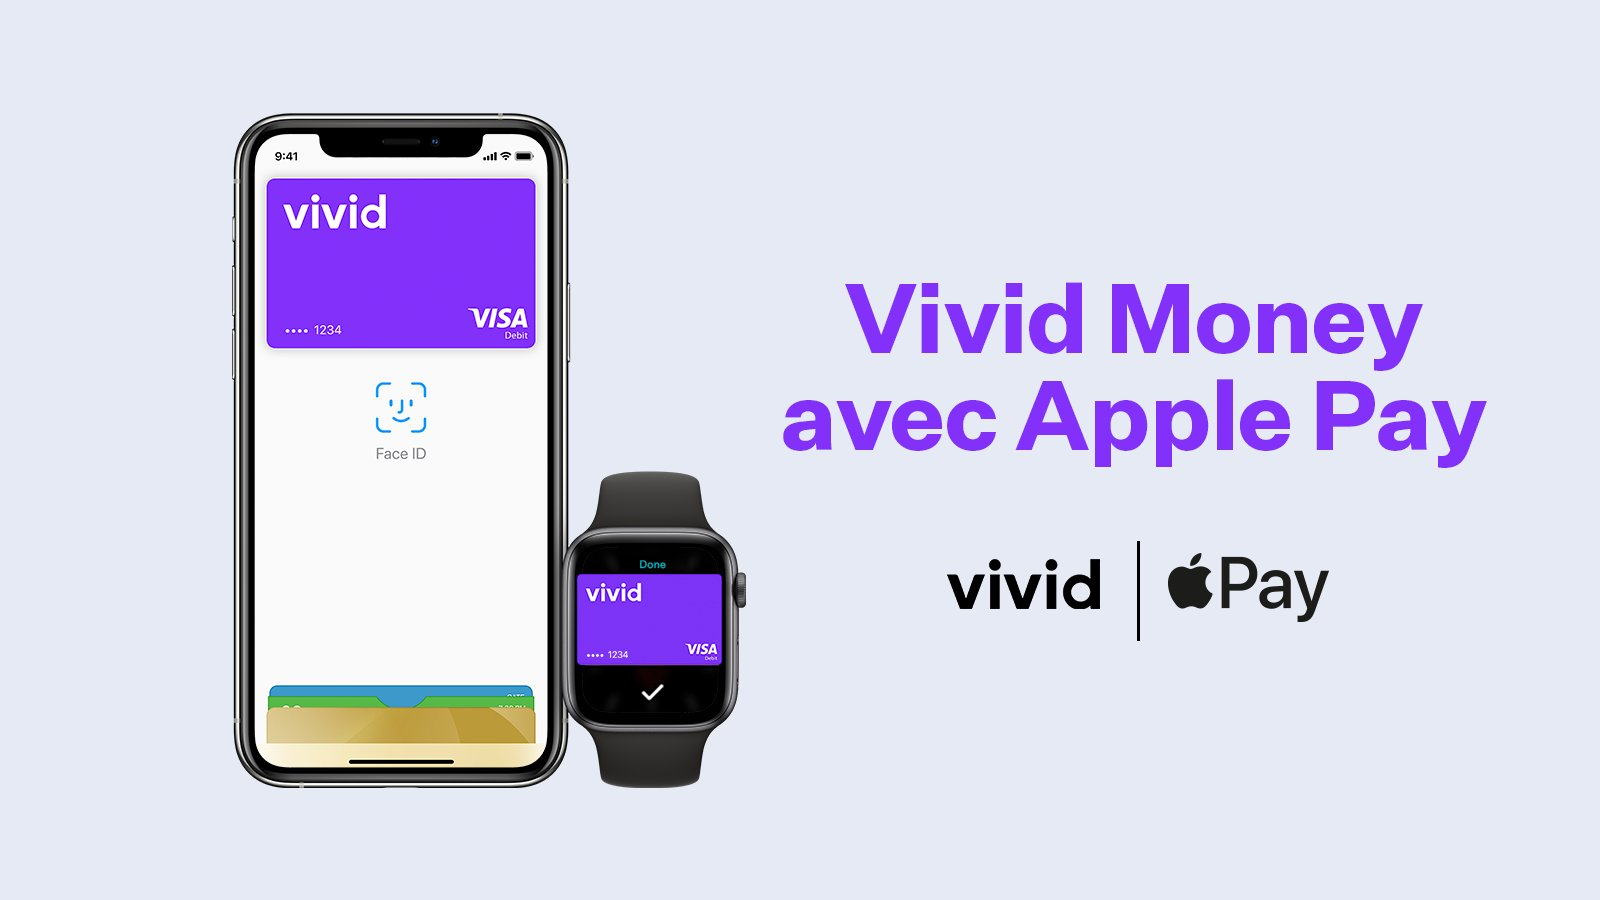 An image announcing Apple Pay support by Vivid Money